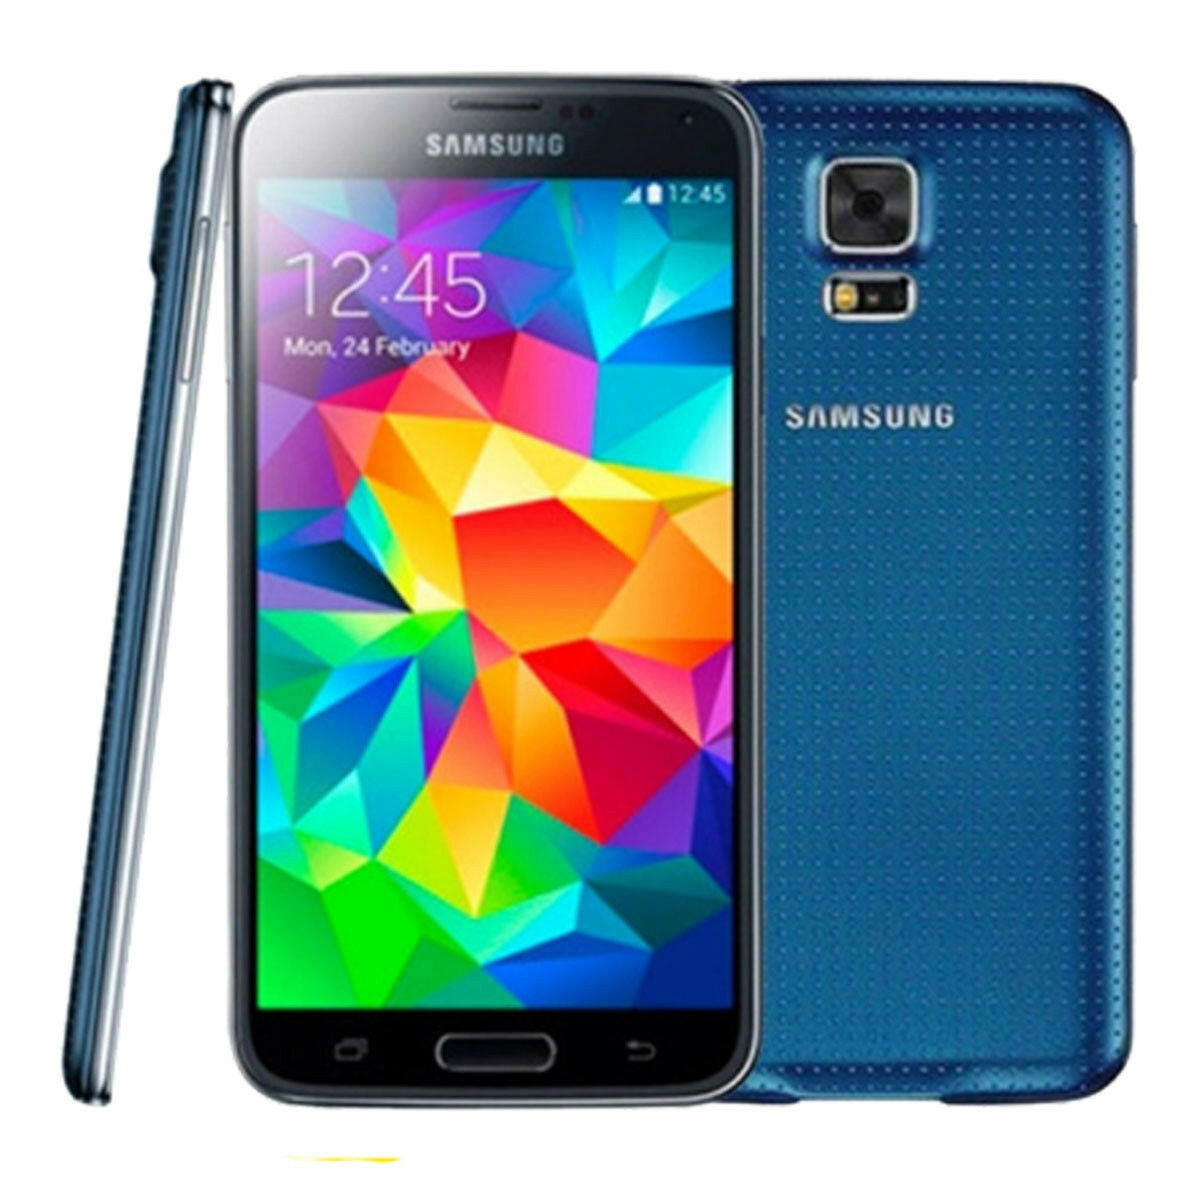 Samsung Galaxy S5 SM-G900 16GB(AT&T T-Mobile GSM Unlocked ) Cell Phone